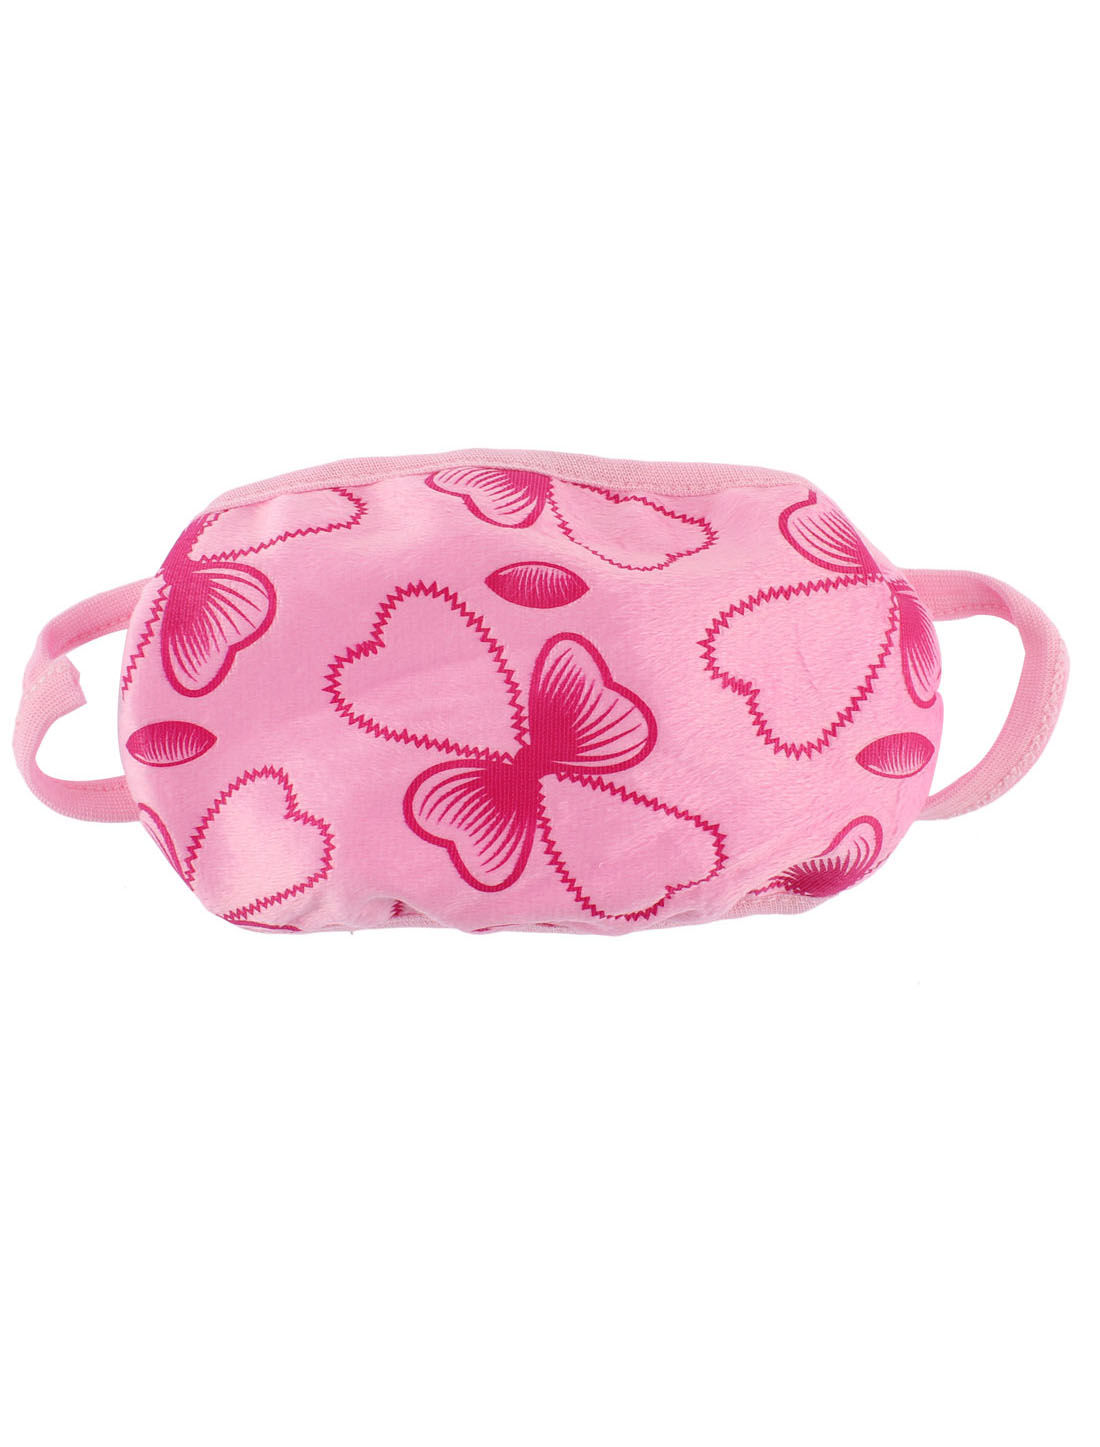 Woman Bowknot Pattern Face Nose Mouth Mask Cover Respirator Protector Pink